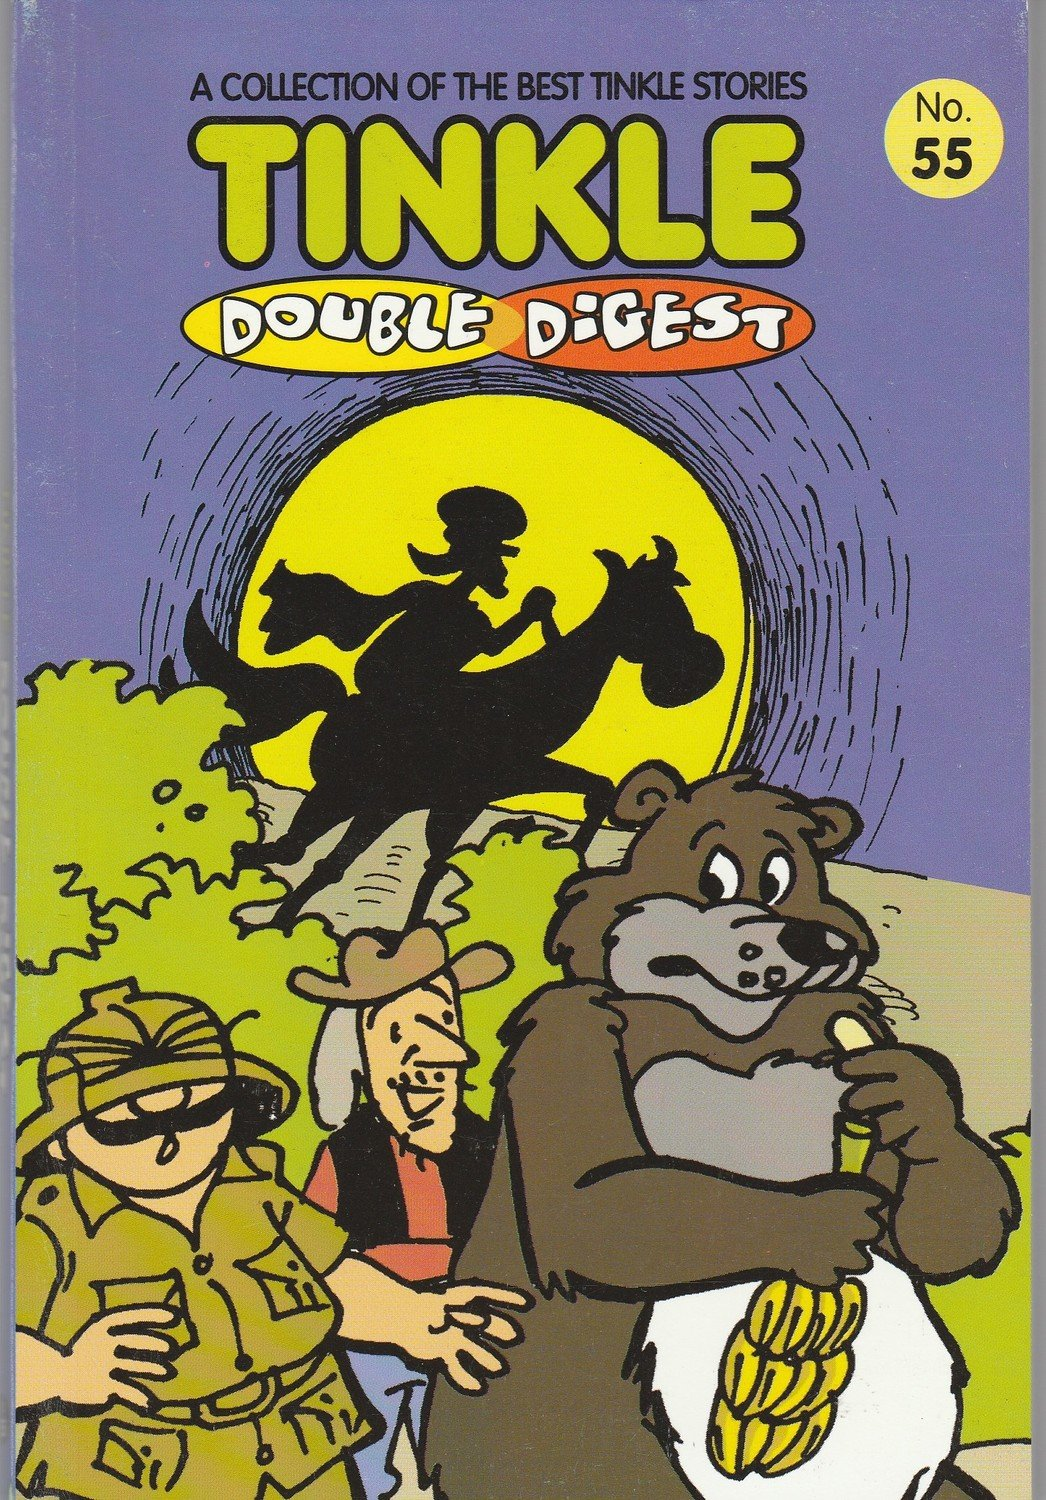 Tinkle Double Digest - No.55